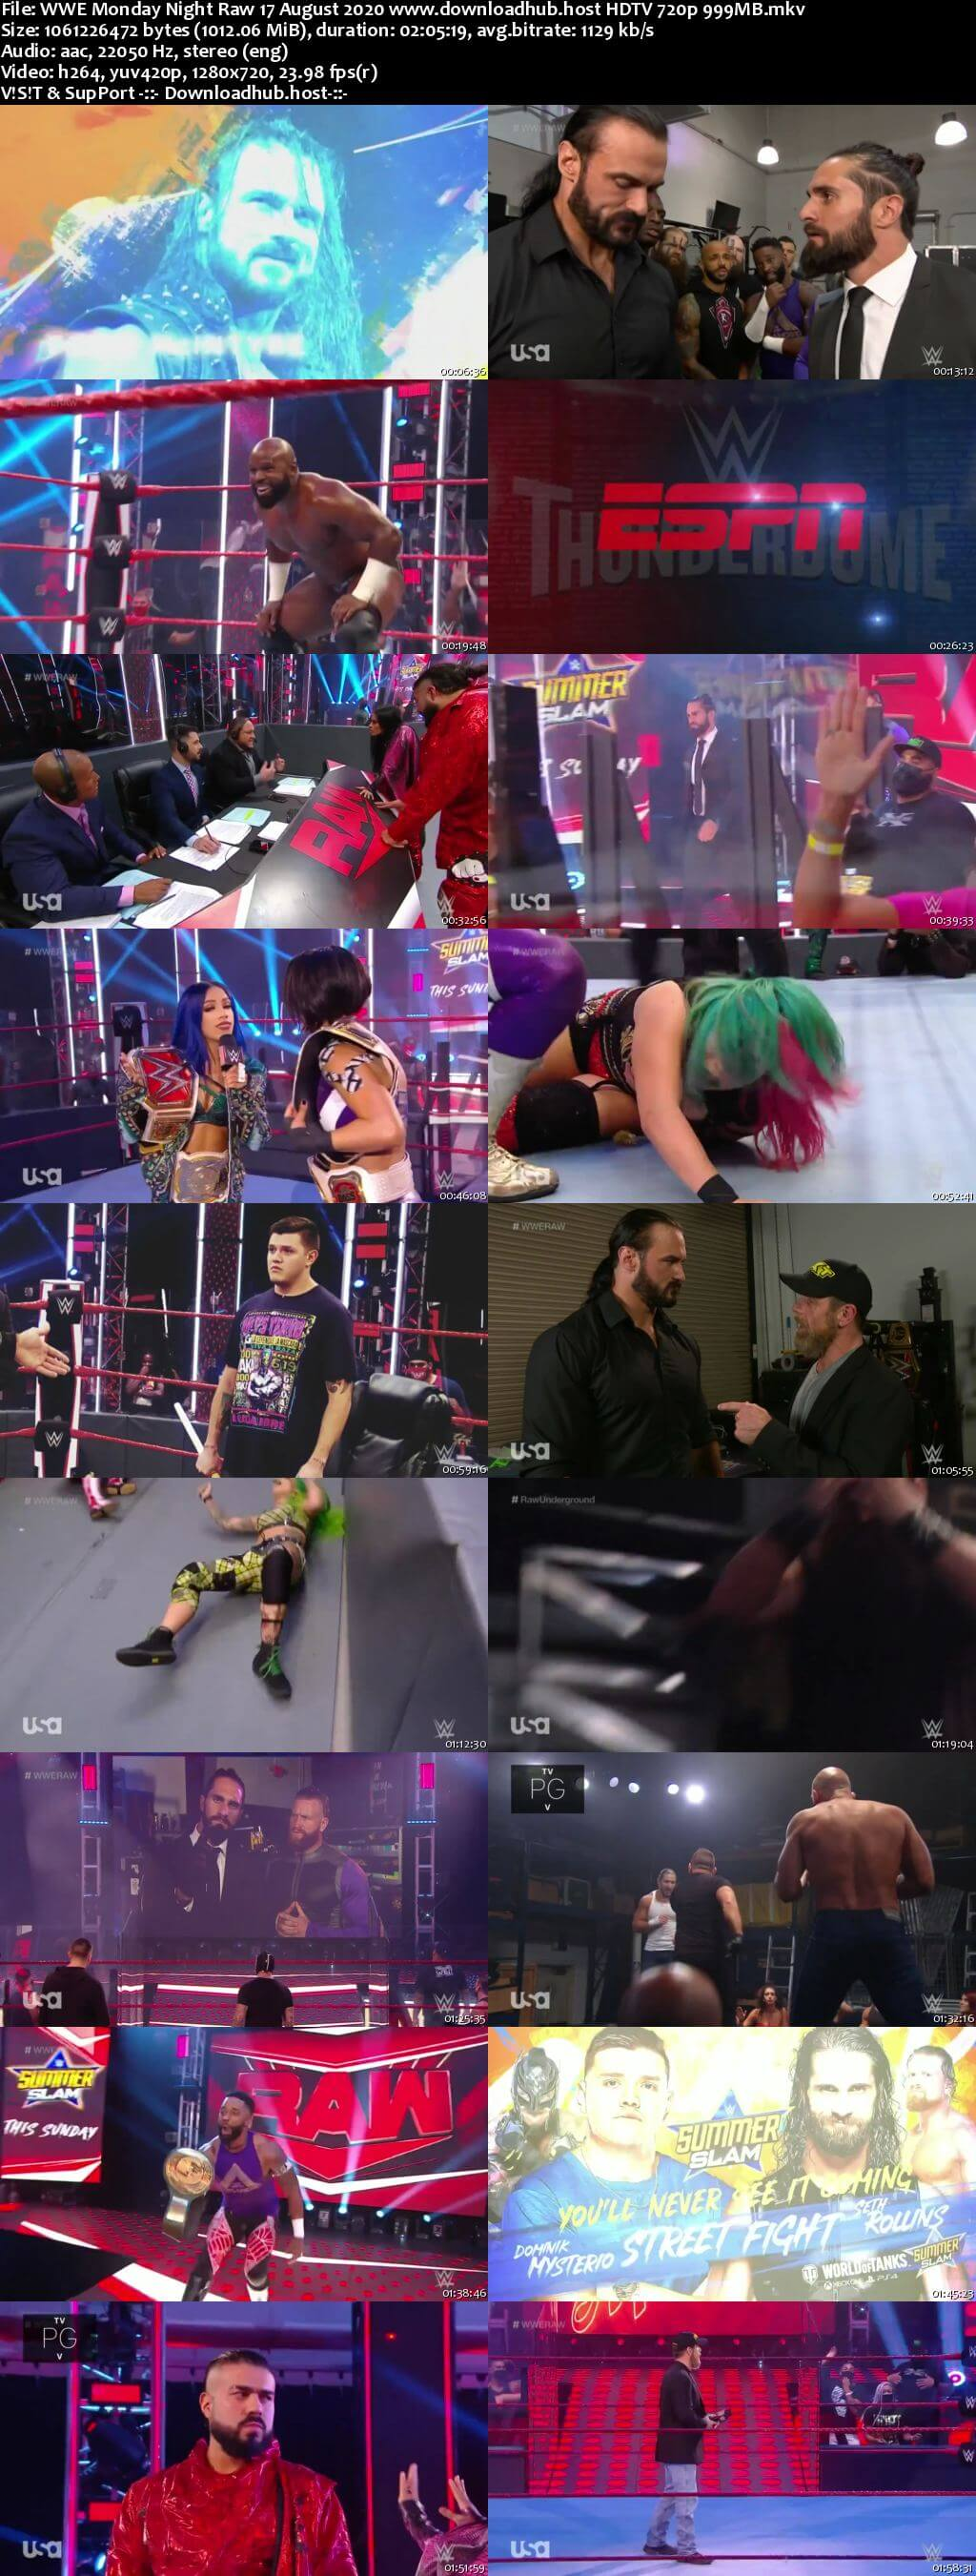 WWE Monday Night Raw 17th August 2020 720p 500MB HDTVRip 480p